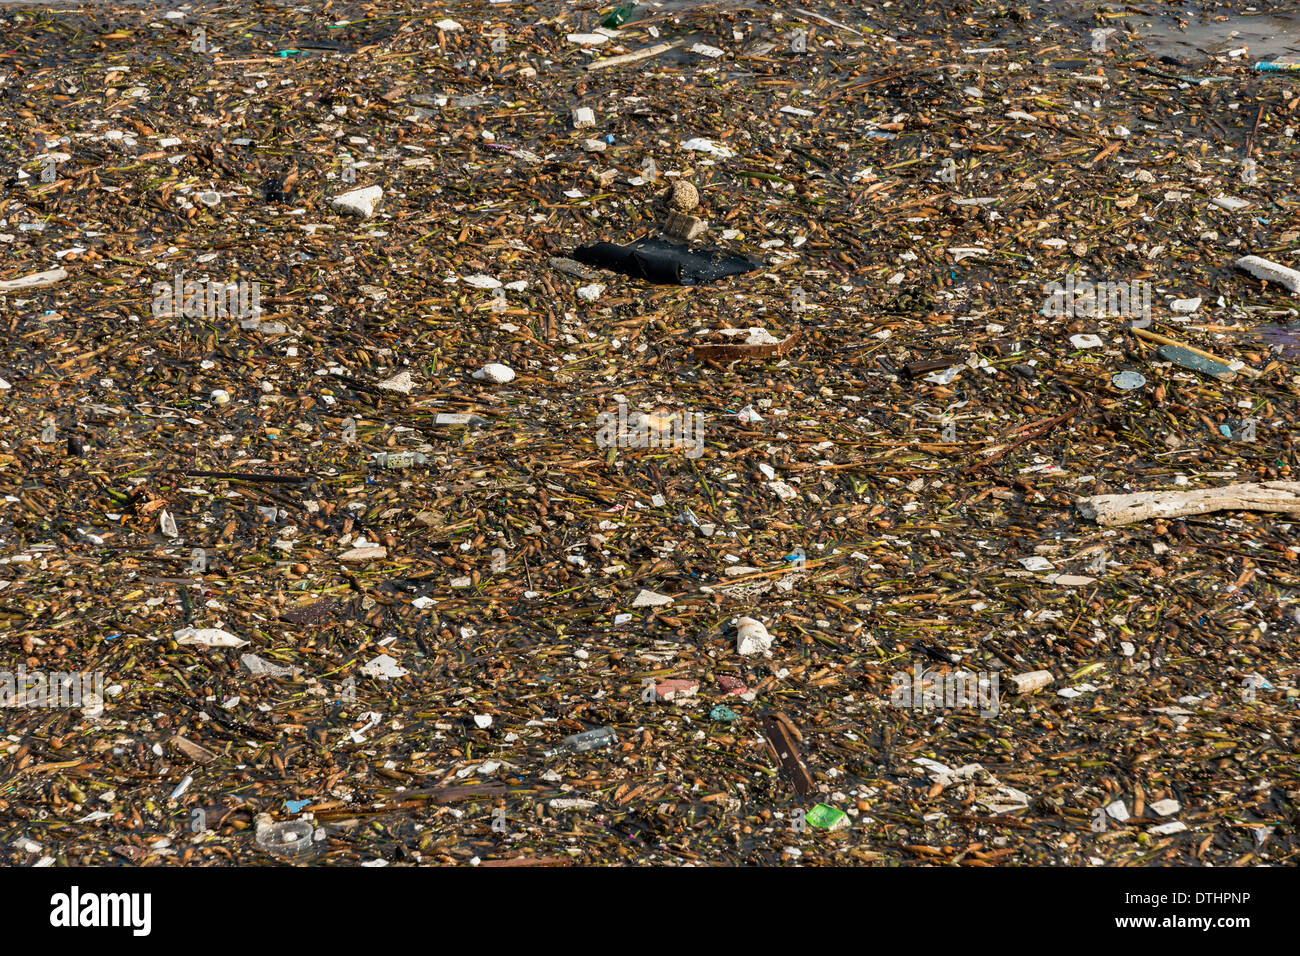 Garbage floating on the Huangpu River, Shanghai, China - Stock Image